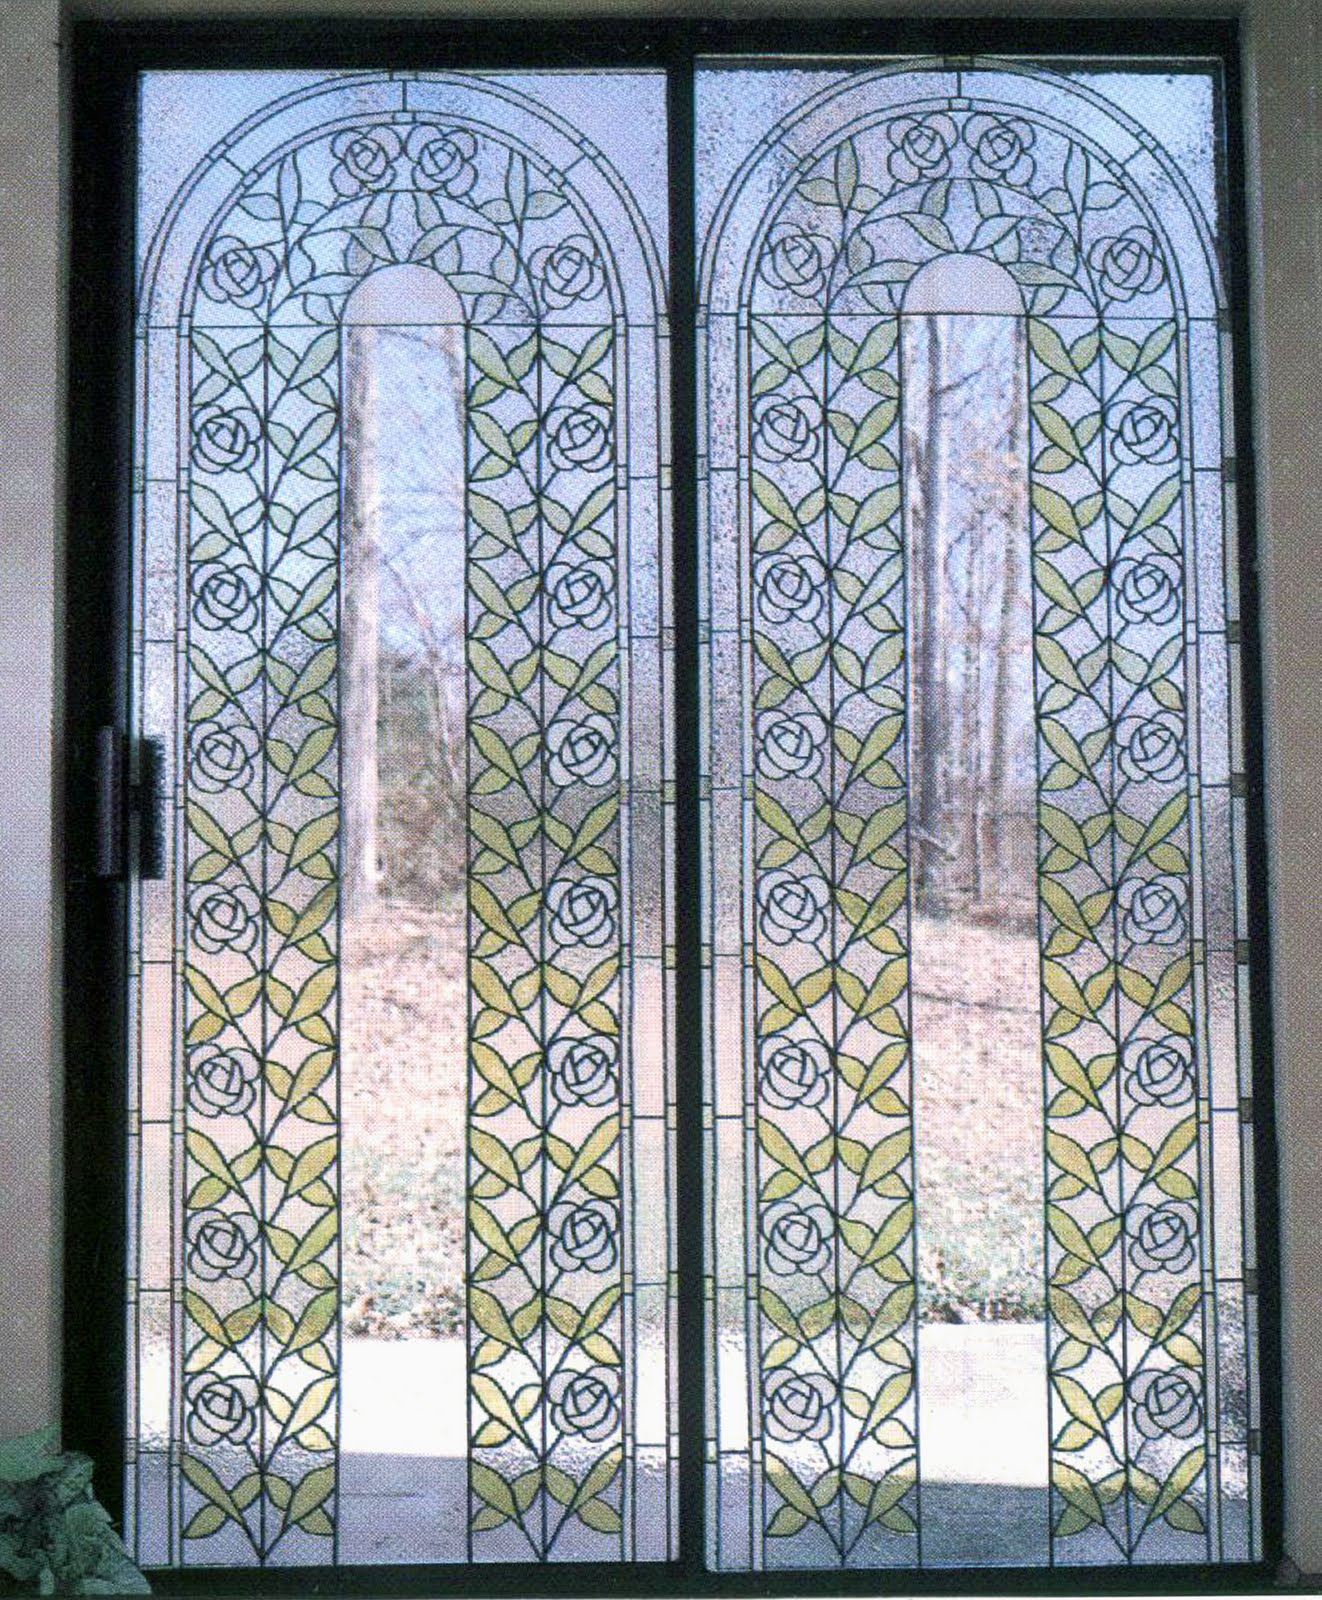 Gallery glass class painting windows by vertical application planetlyrics Choice Image